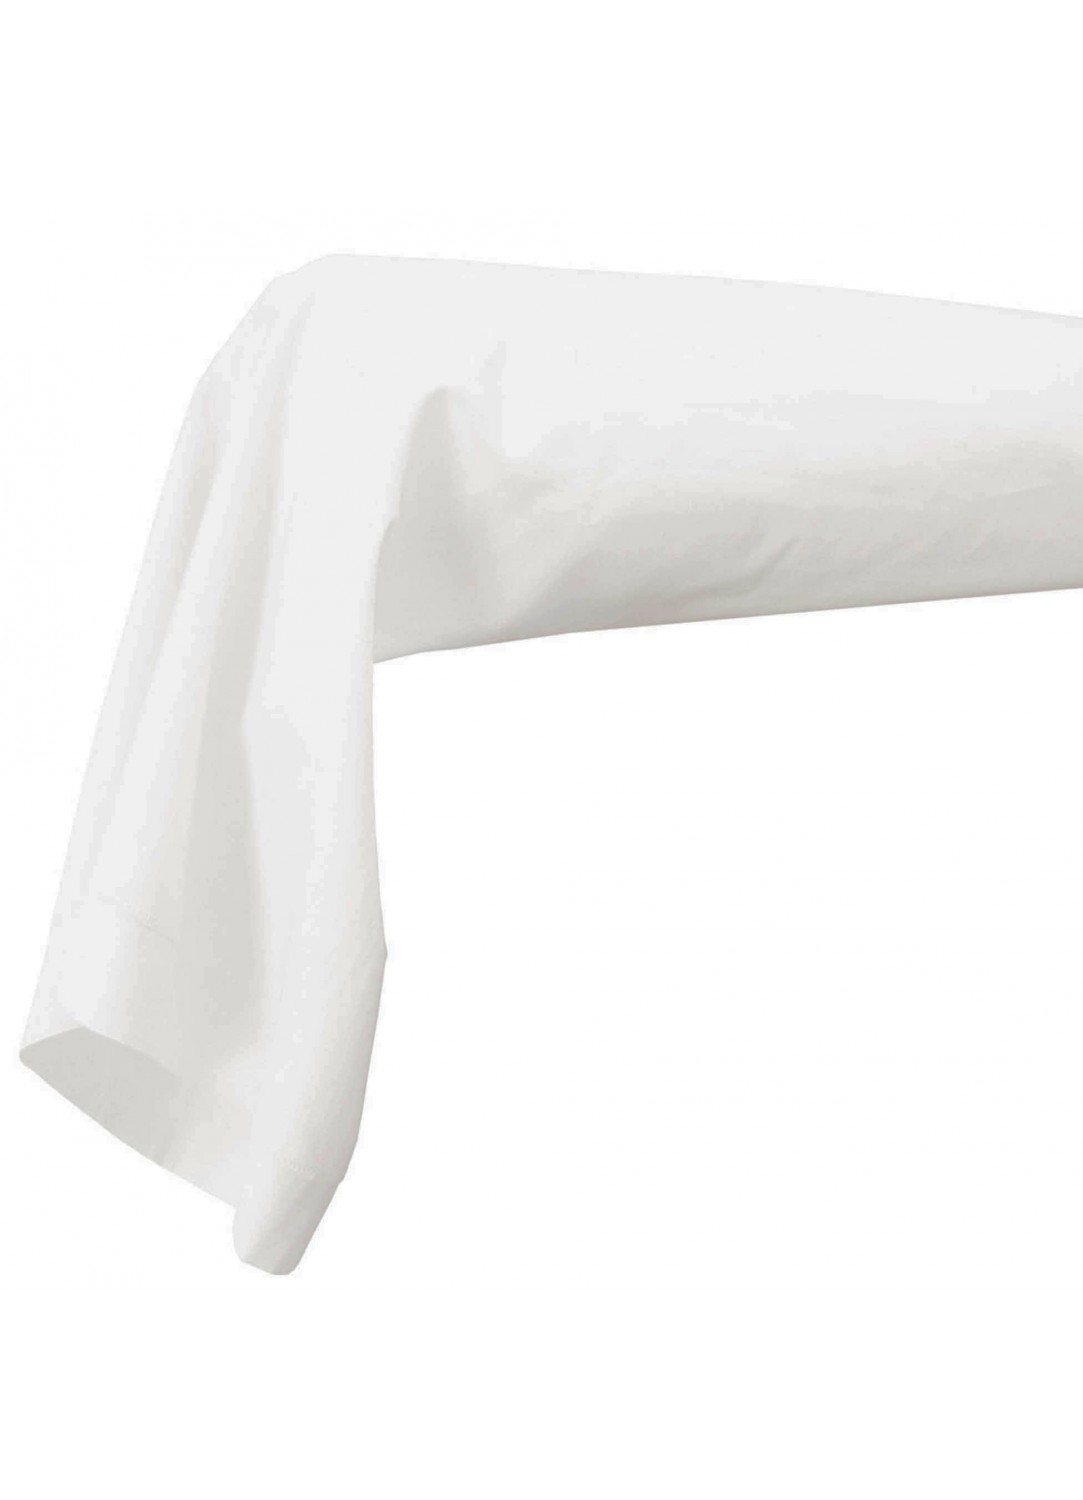 Housse de traversin percale 86 x 190 cm (Blanc)